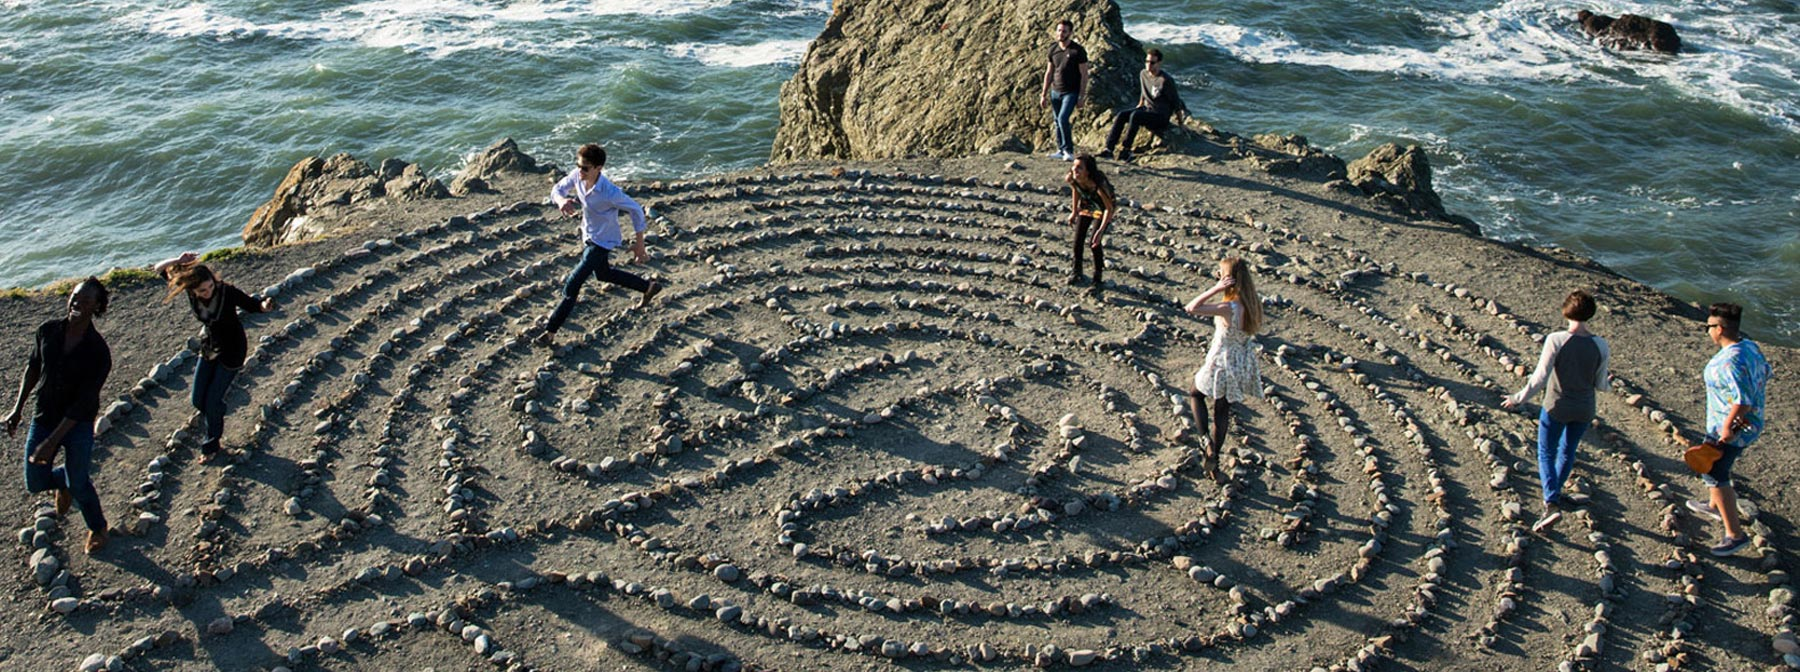 Students running through the stone maze at SF's Land's End park